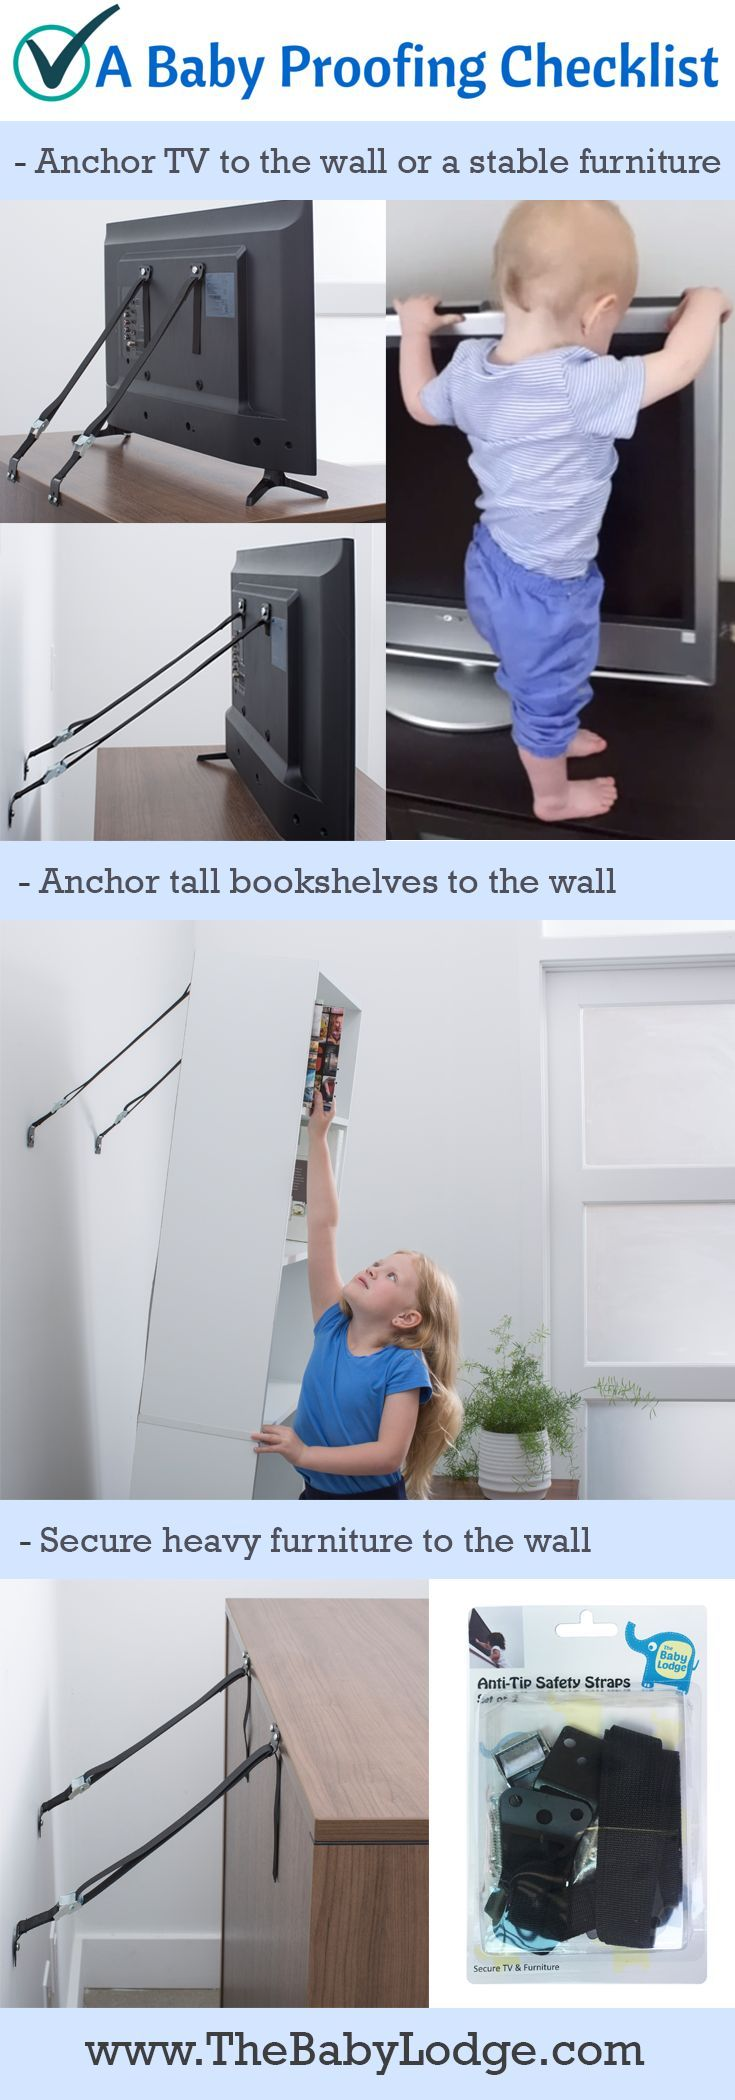 Make use of anti-tip furniture straps to anchor furniture (such as dressers and bookshelves) and TV to the wall to avoid accidents due to toppling/tipping of the TV and furniture. Read on for more tips and information on baby proofing your home. Save the pin to keep the baby proofing checklist handy or get your anti-tip furniture strap today - https://www.amazon.com/dp/B01CNXG02I